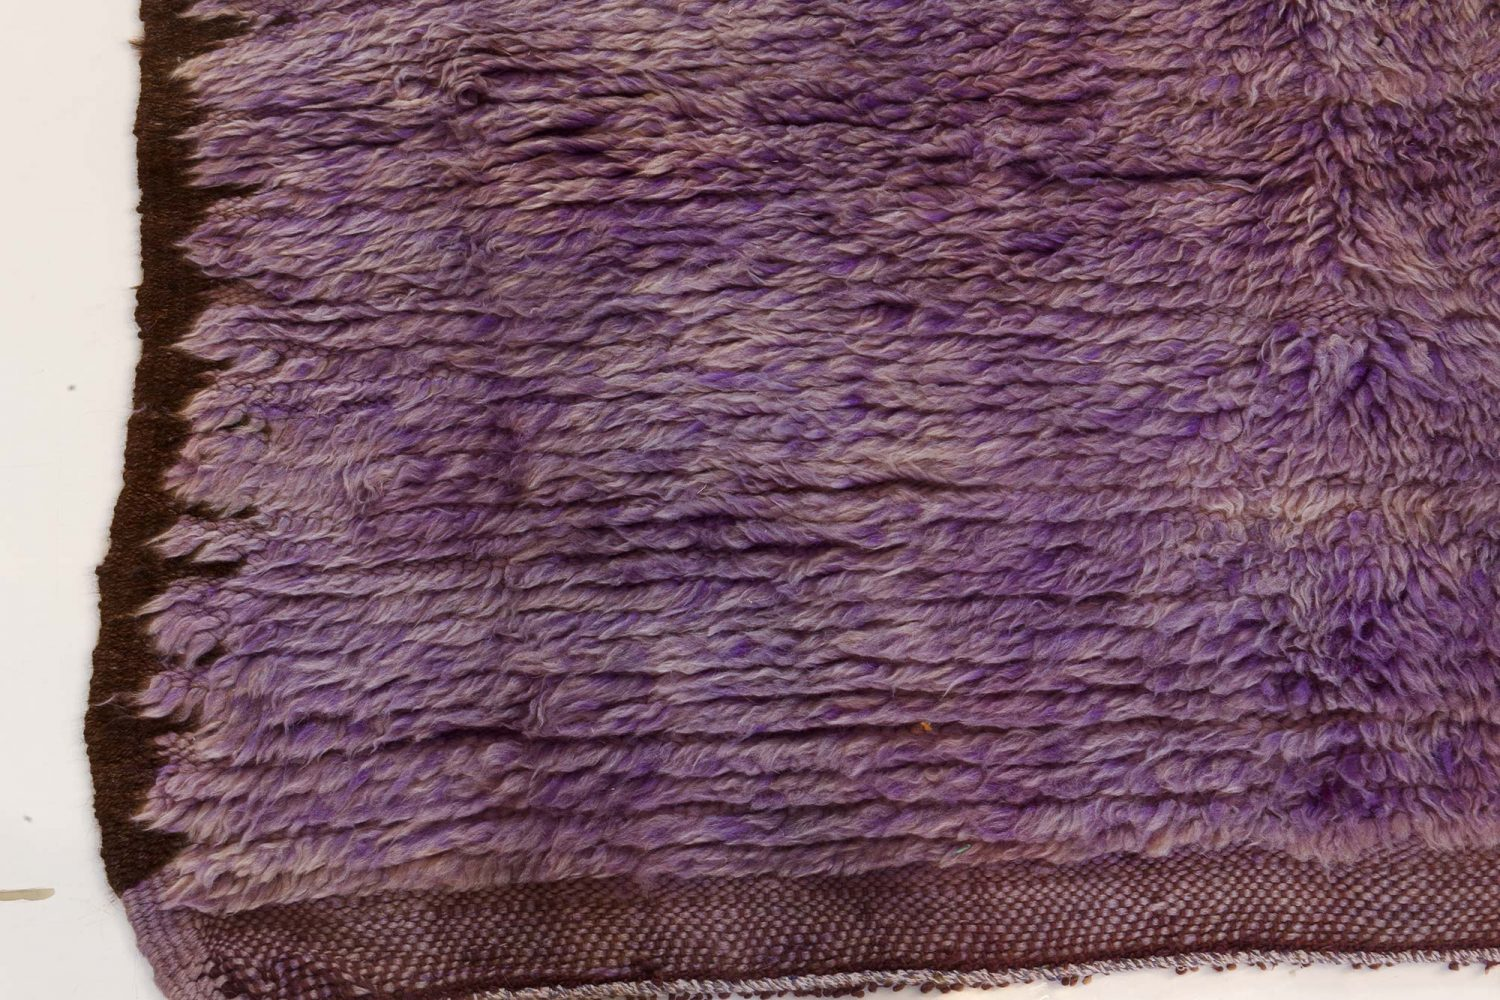 Midcentury Moroccan Purple Handwoven Wool Rug BB7353